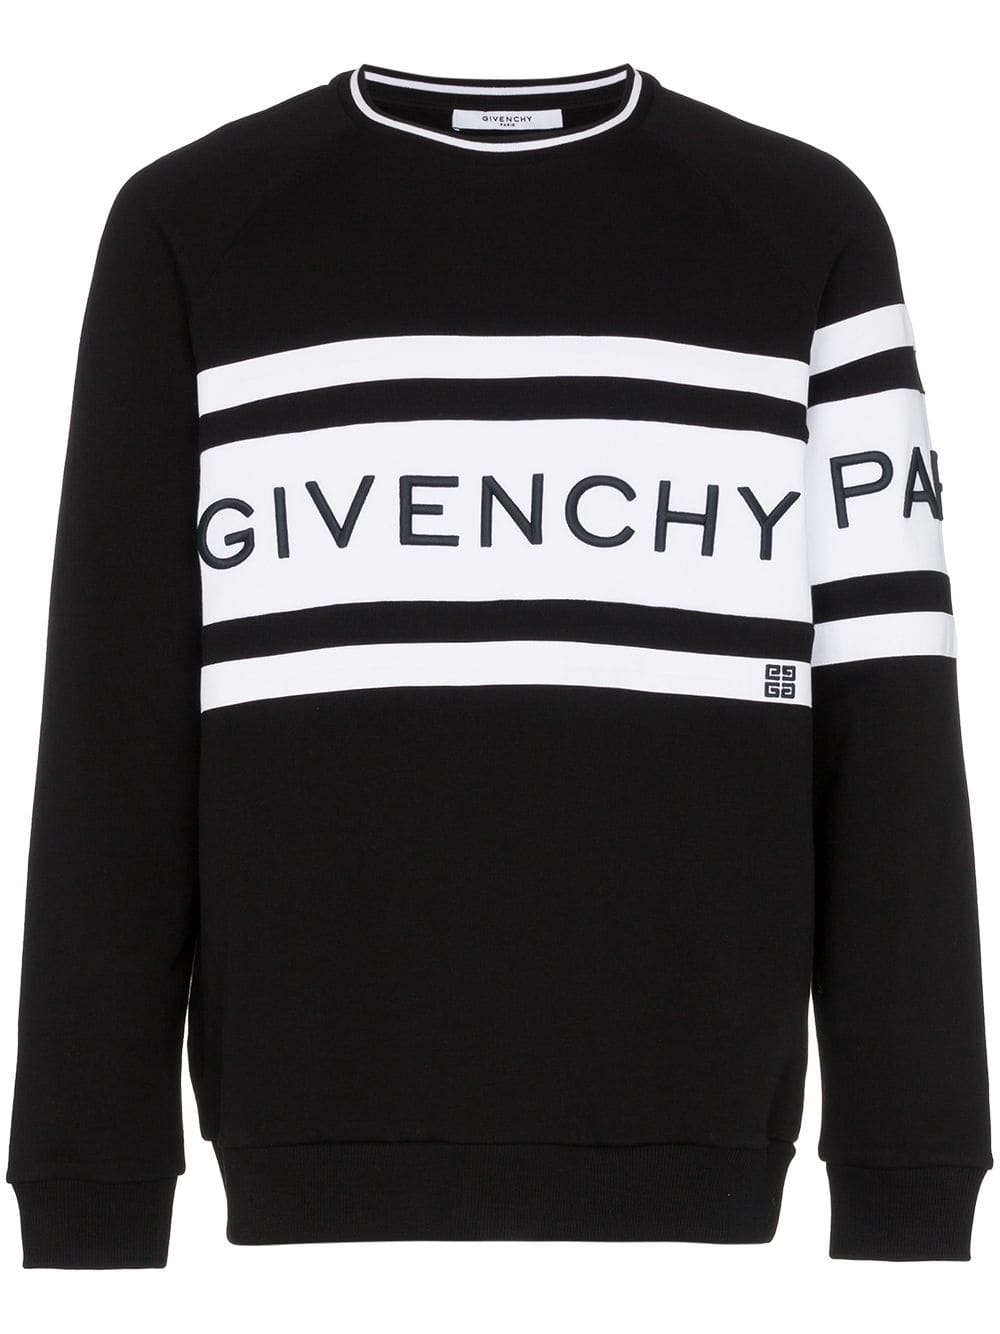 8ddeaa28 Givenchy cotton large logo crew neck sweater - Black in 2019 ...